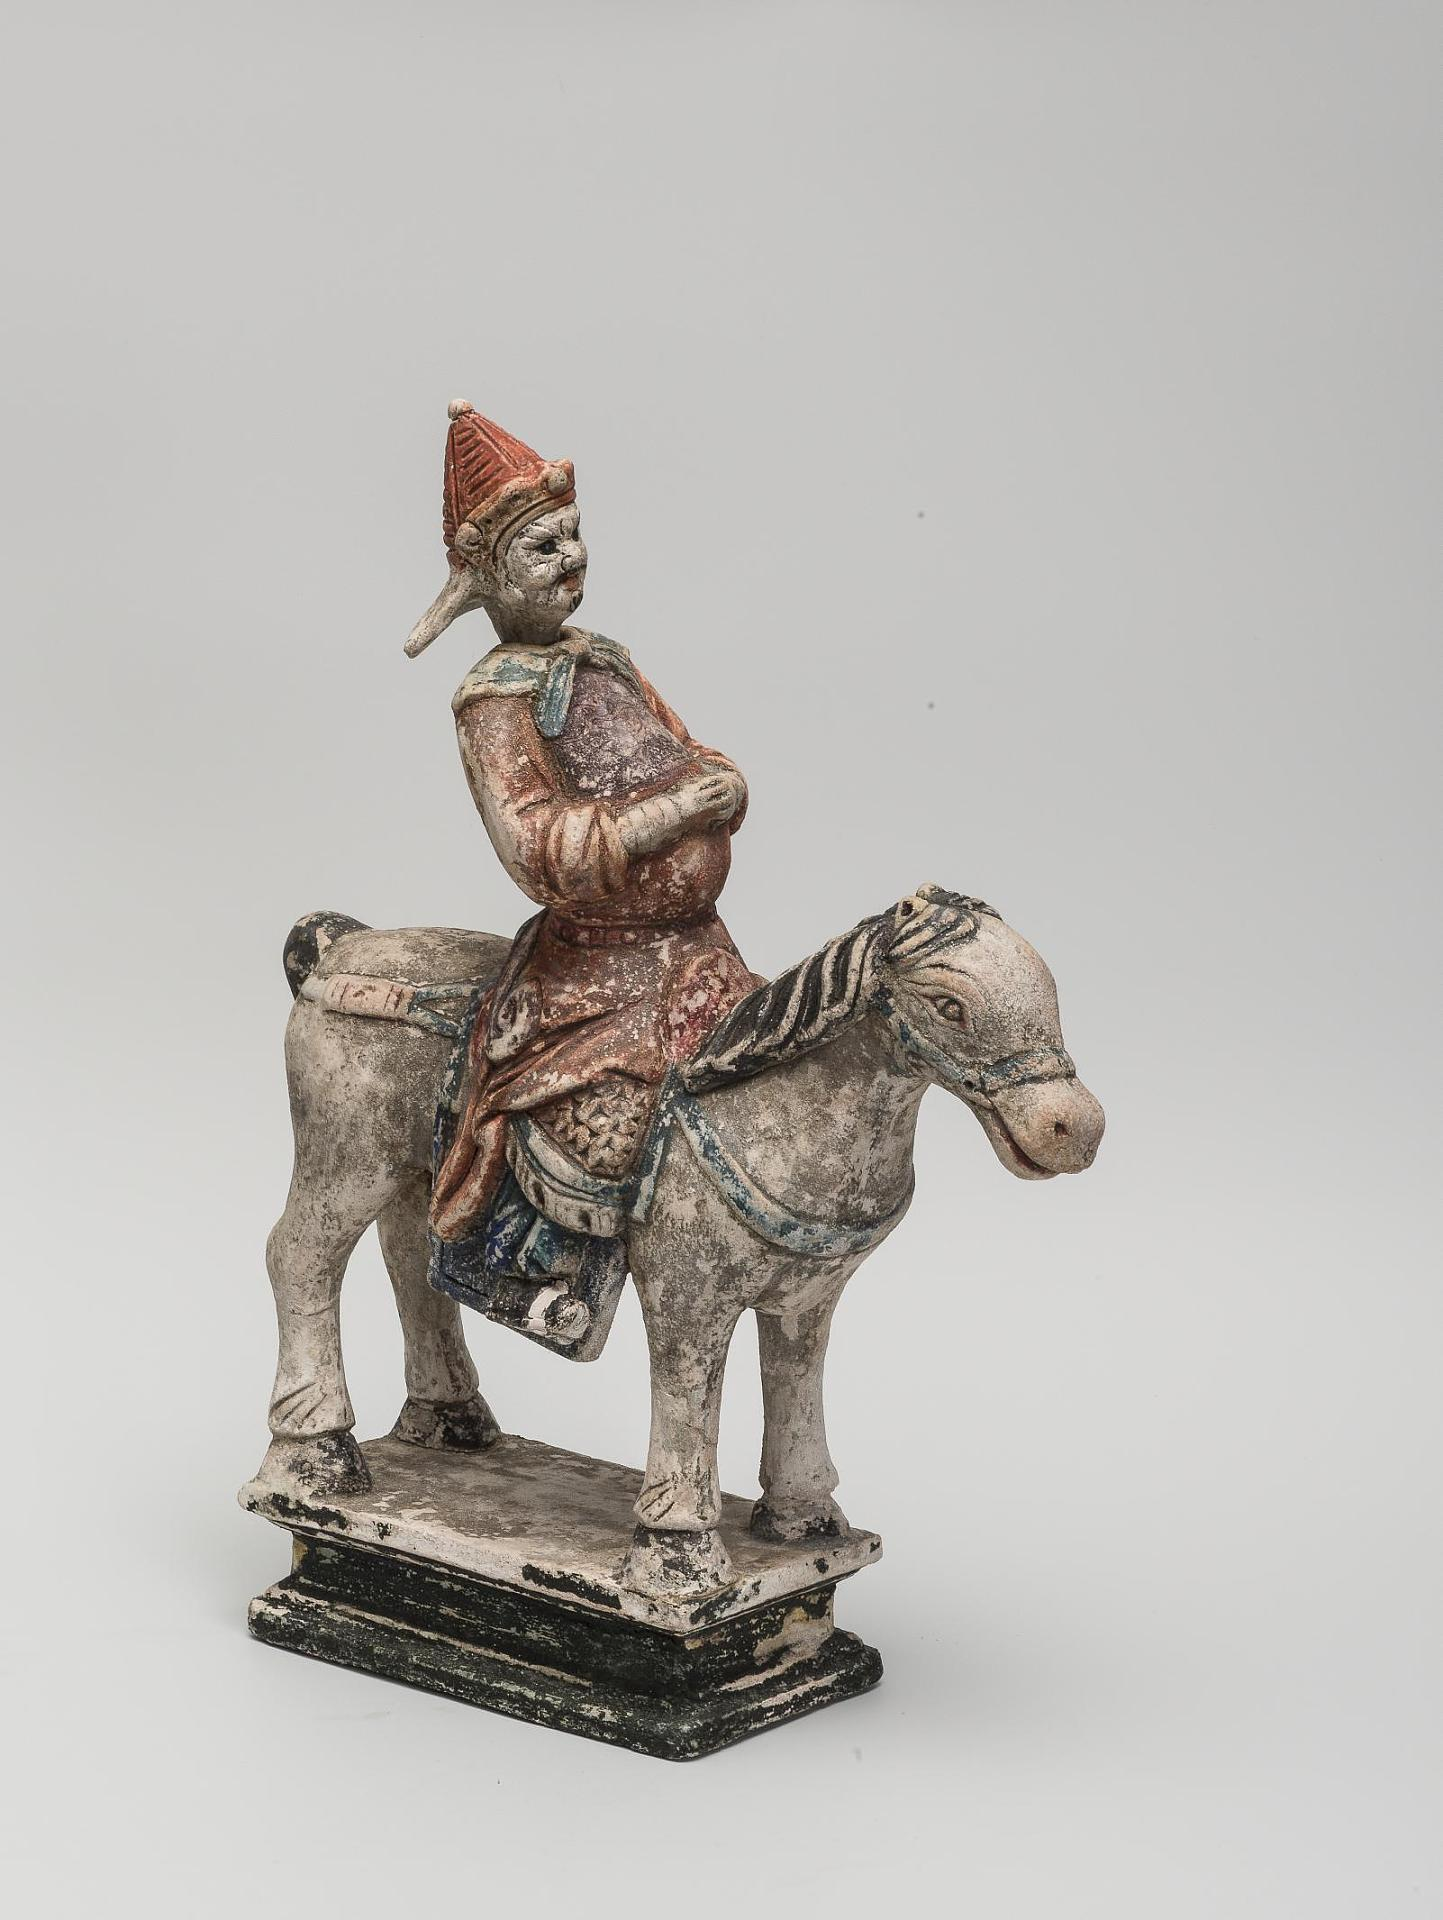 The figure of a warrior, China, the 16th century, clay, polychrome painting